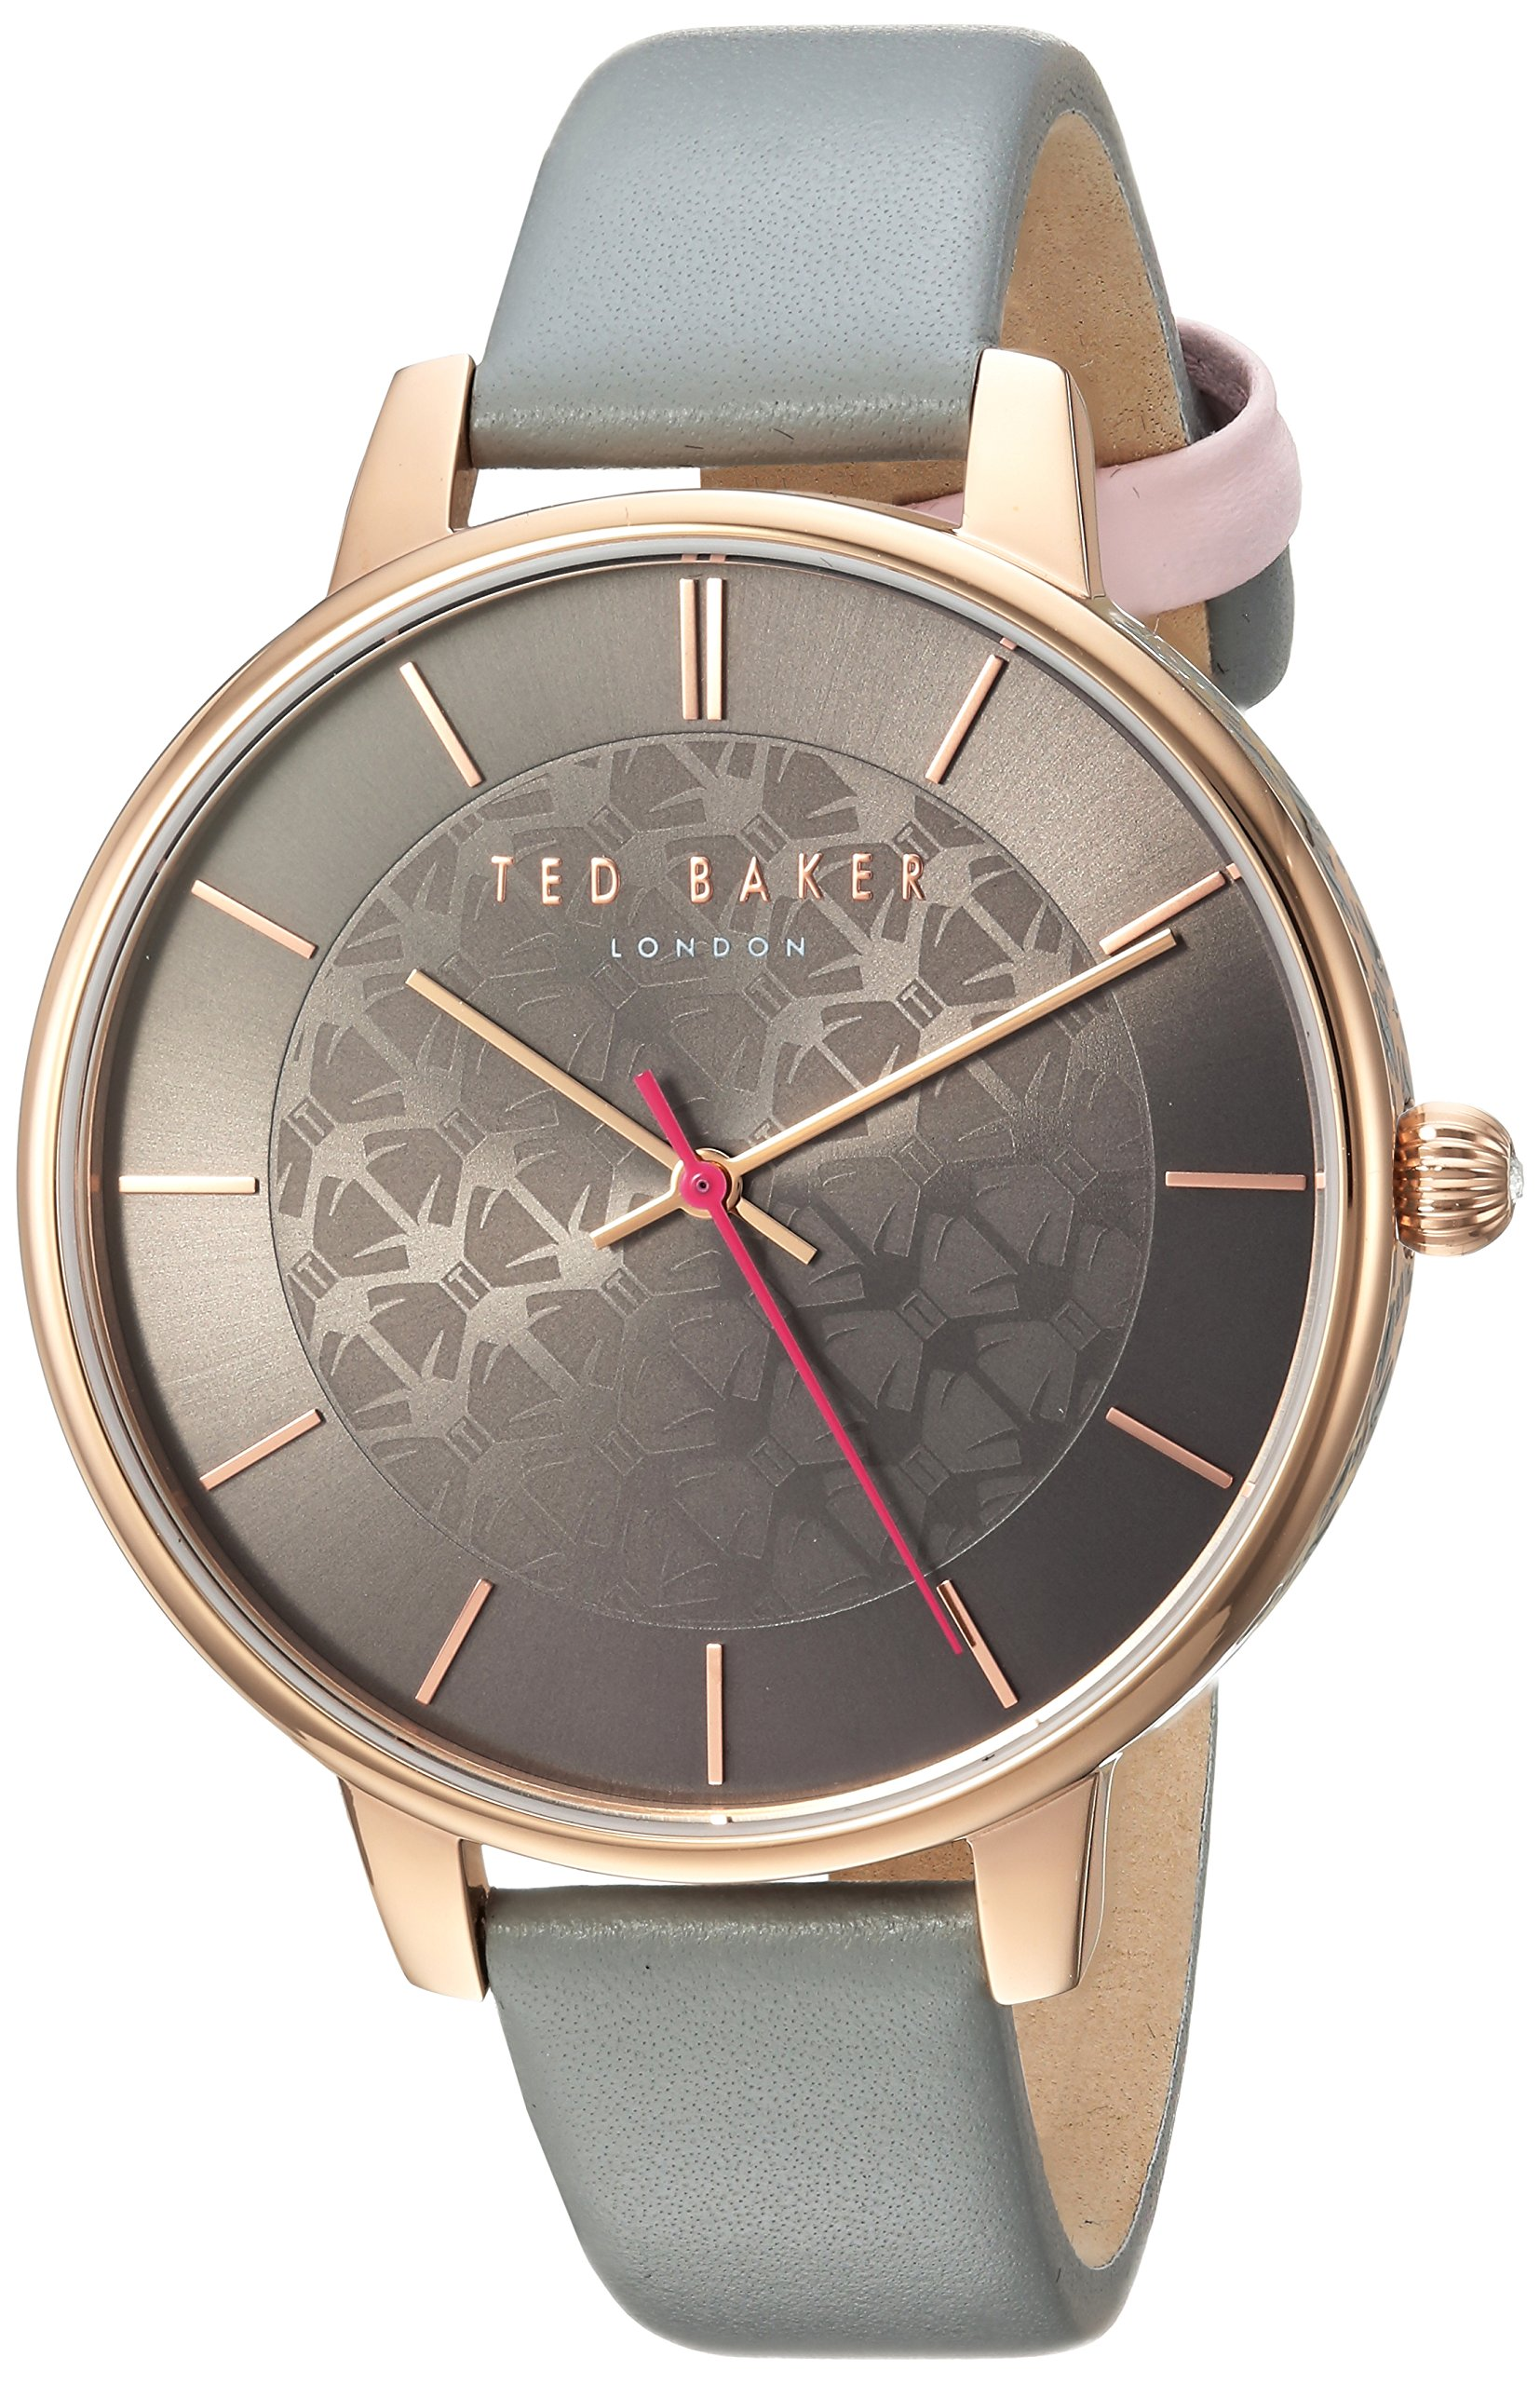 Ted Baker Women's 'Kate' Quartz Stainless Steel and Leather Casual Watch, Color:Grey (Model: TEC0025018) by Ted Baker